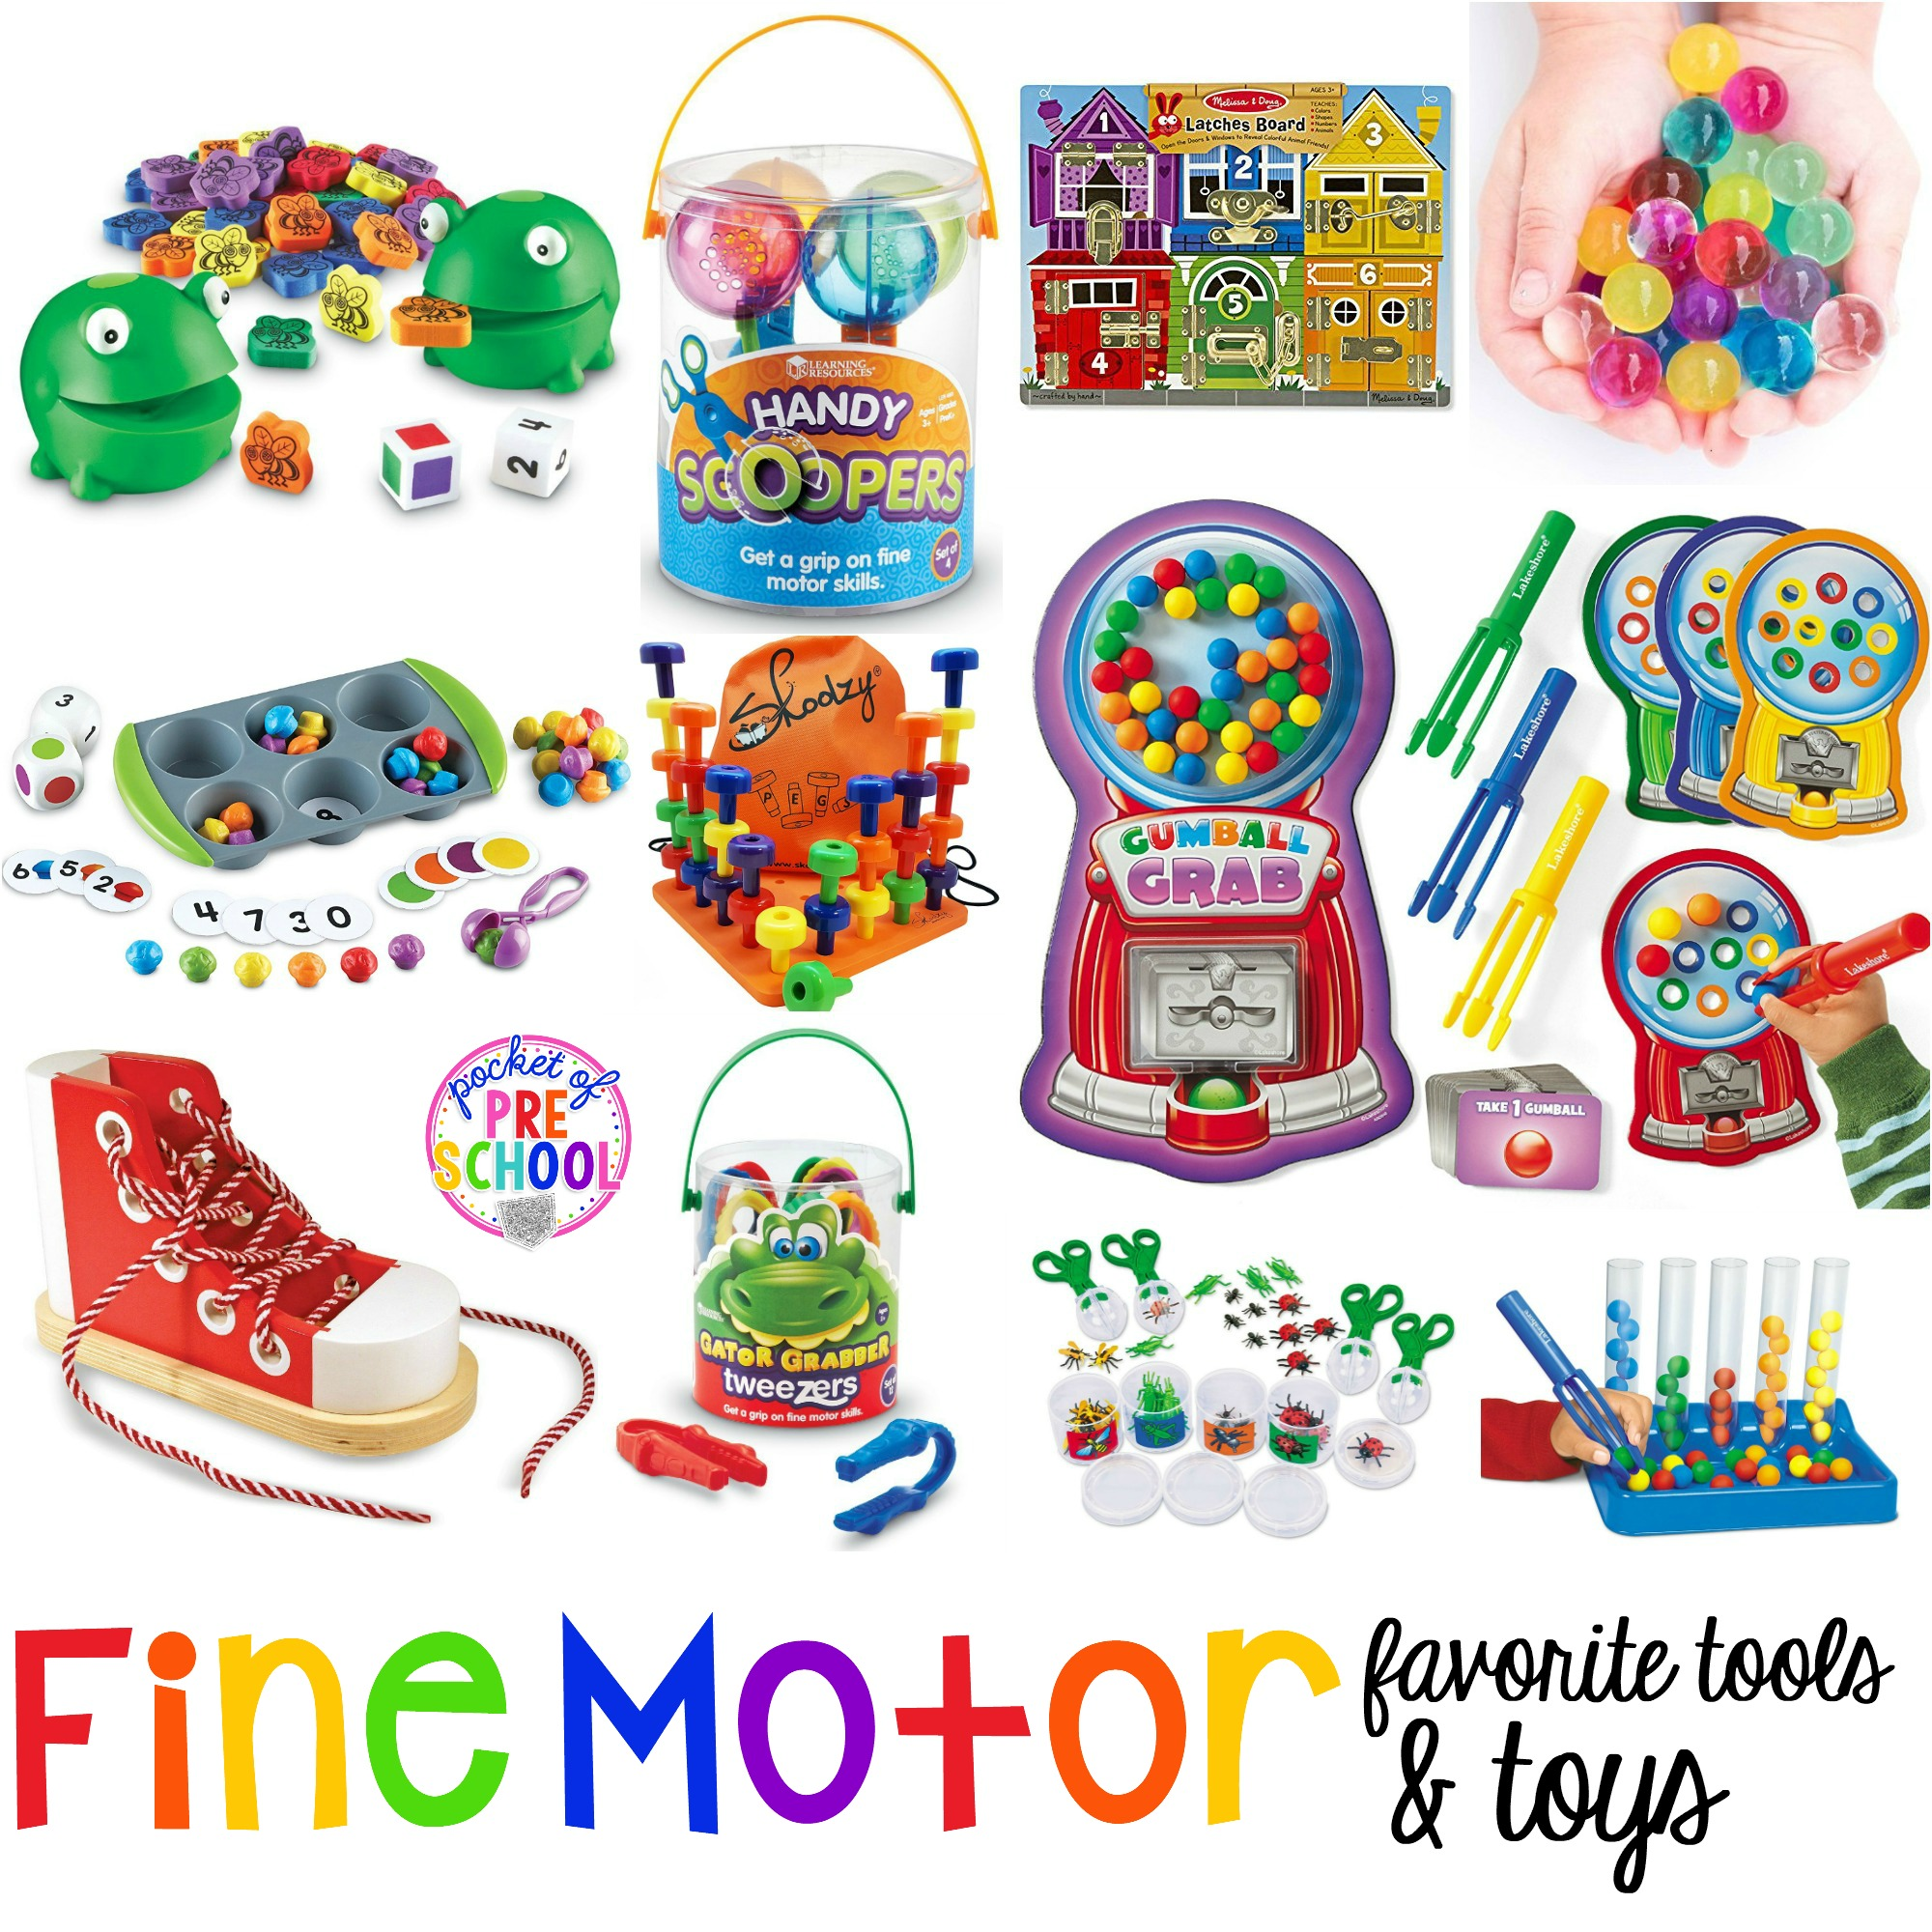 Favorite Fine Motor Tools Cover Edited